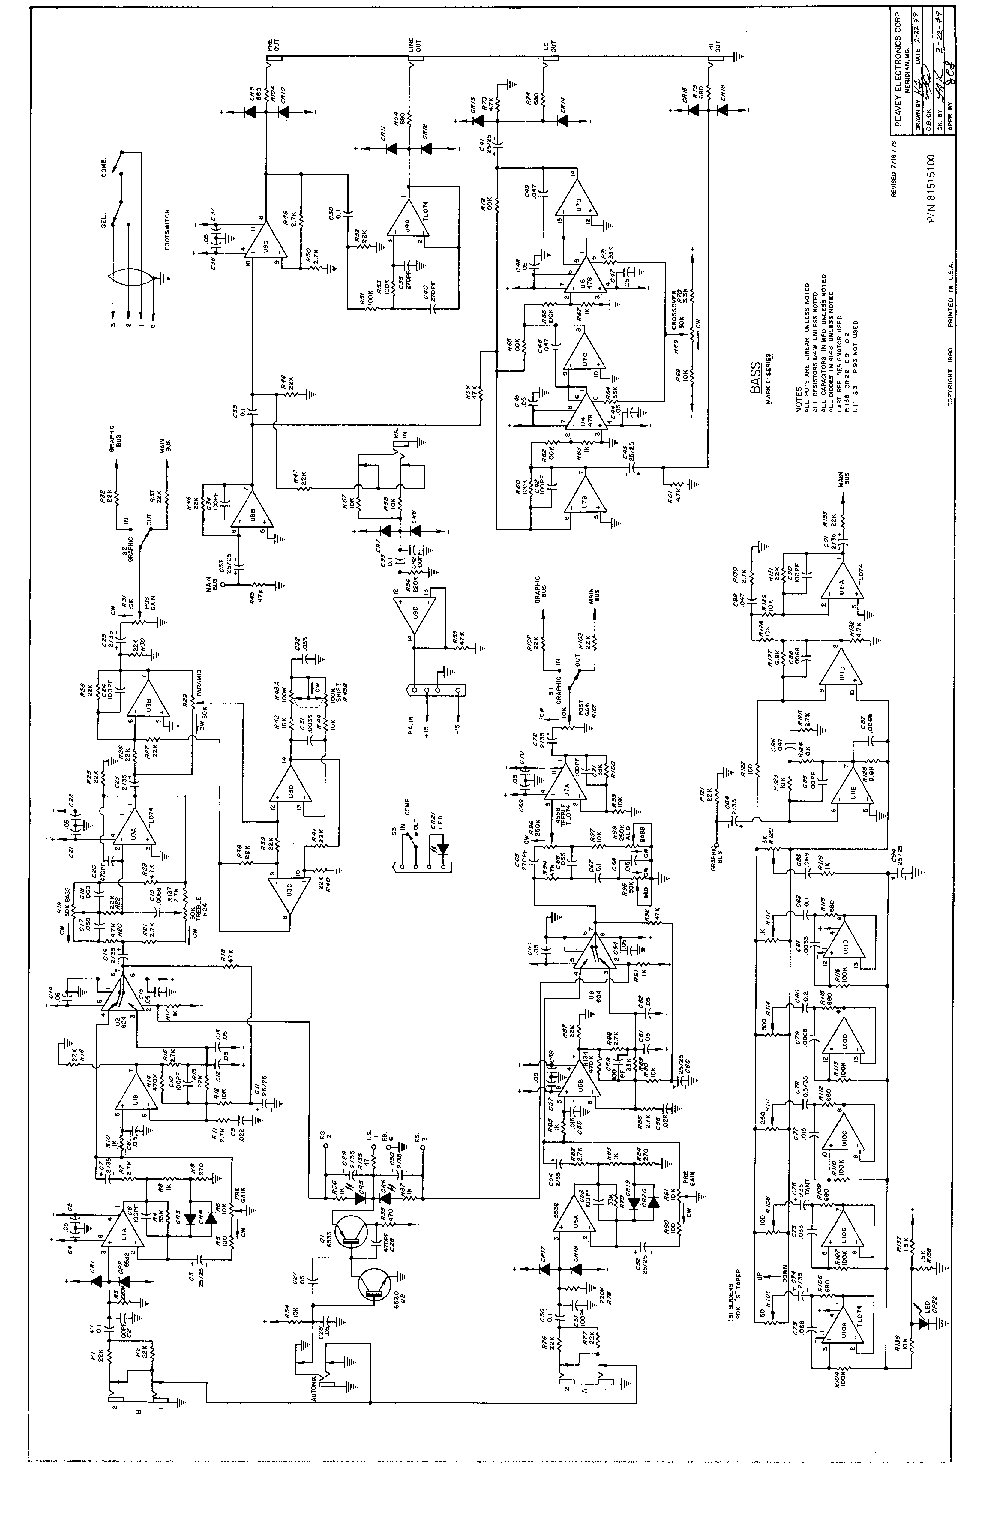 PEAVEY SUPREME XL Service Manual download, schematics, eeprom ...